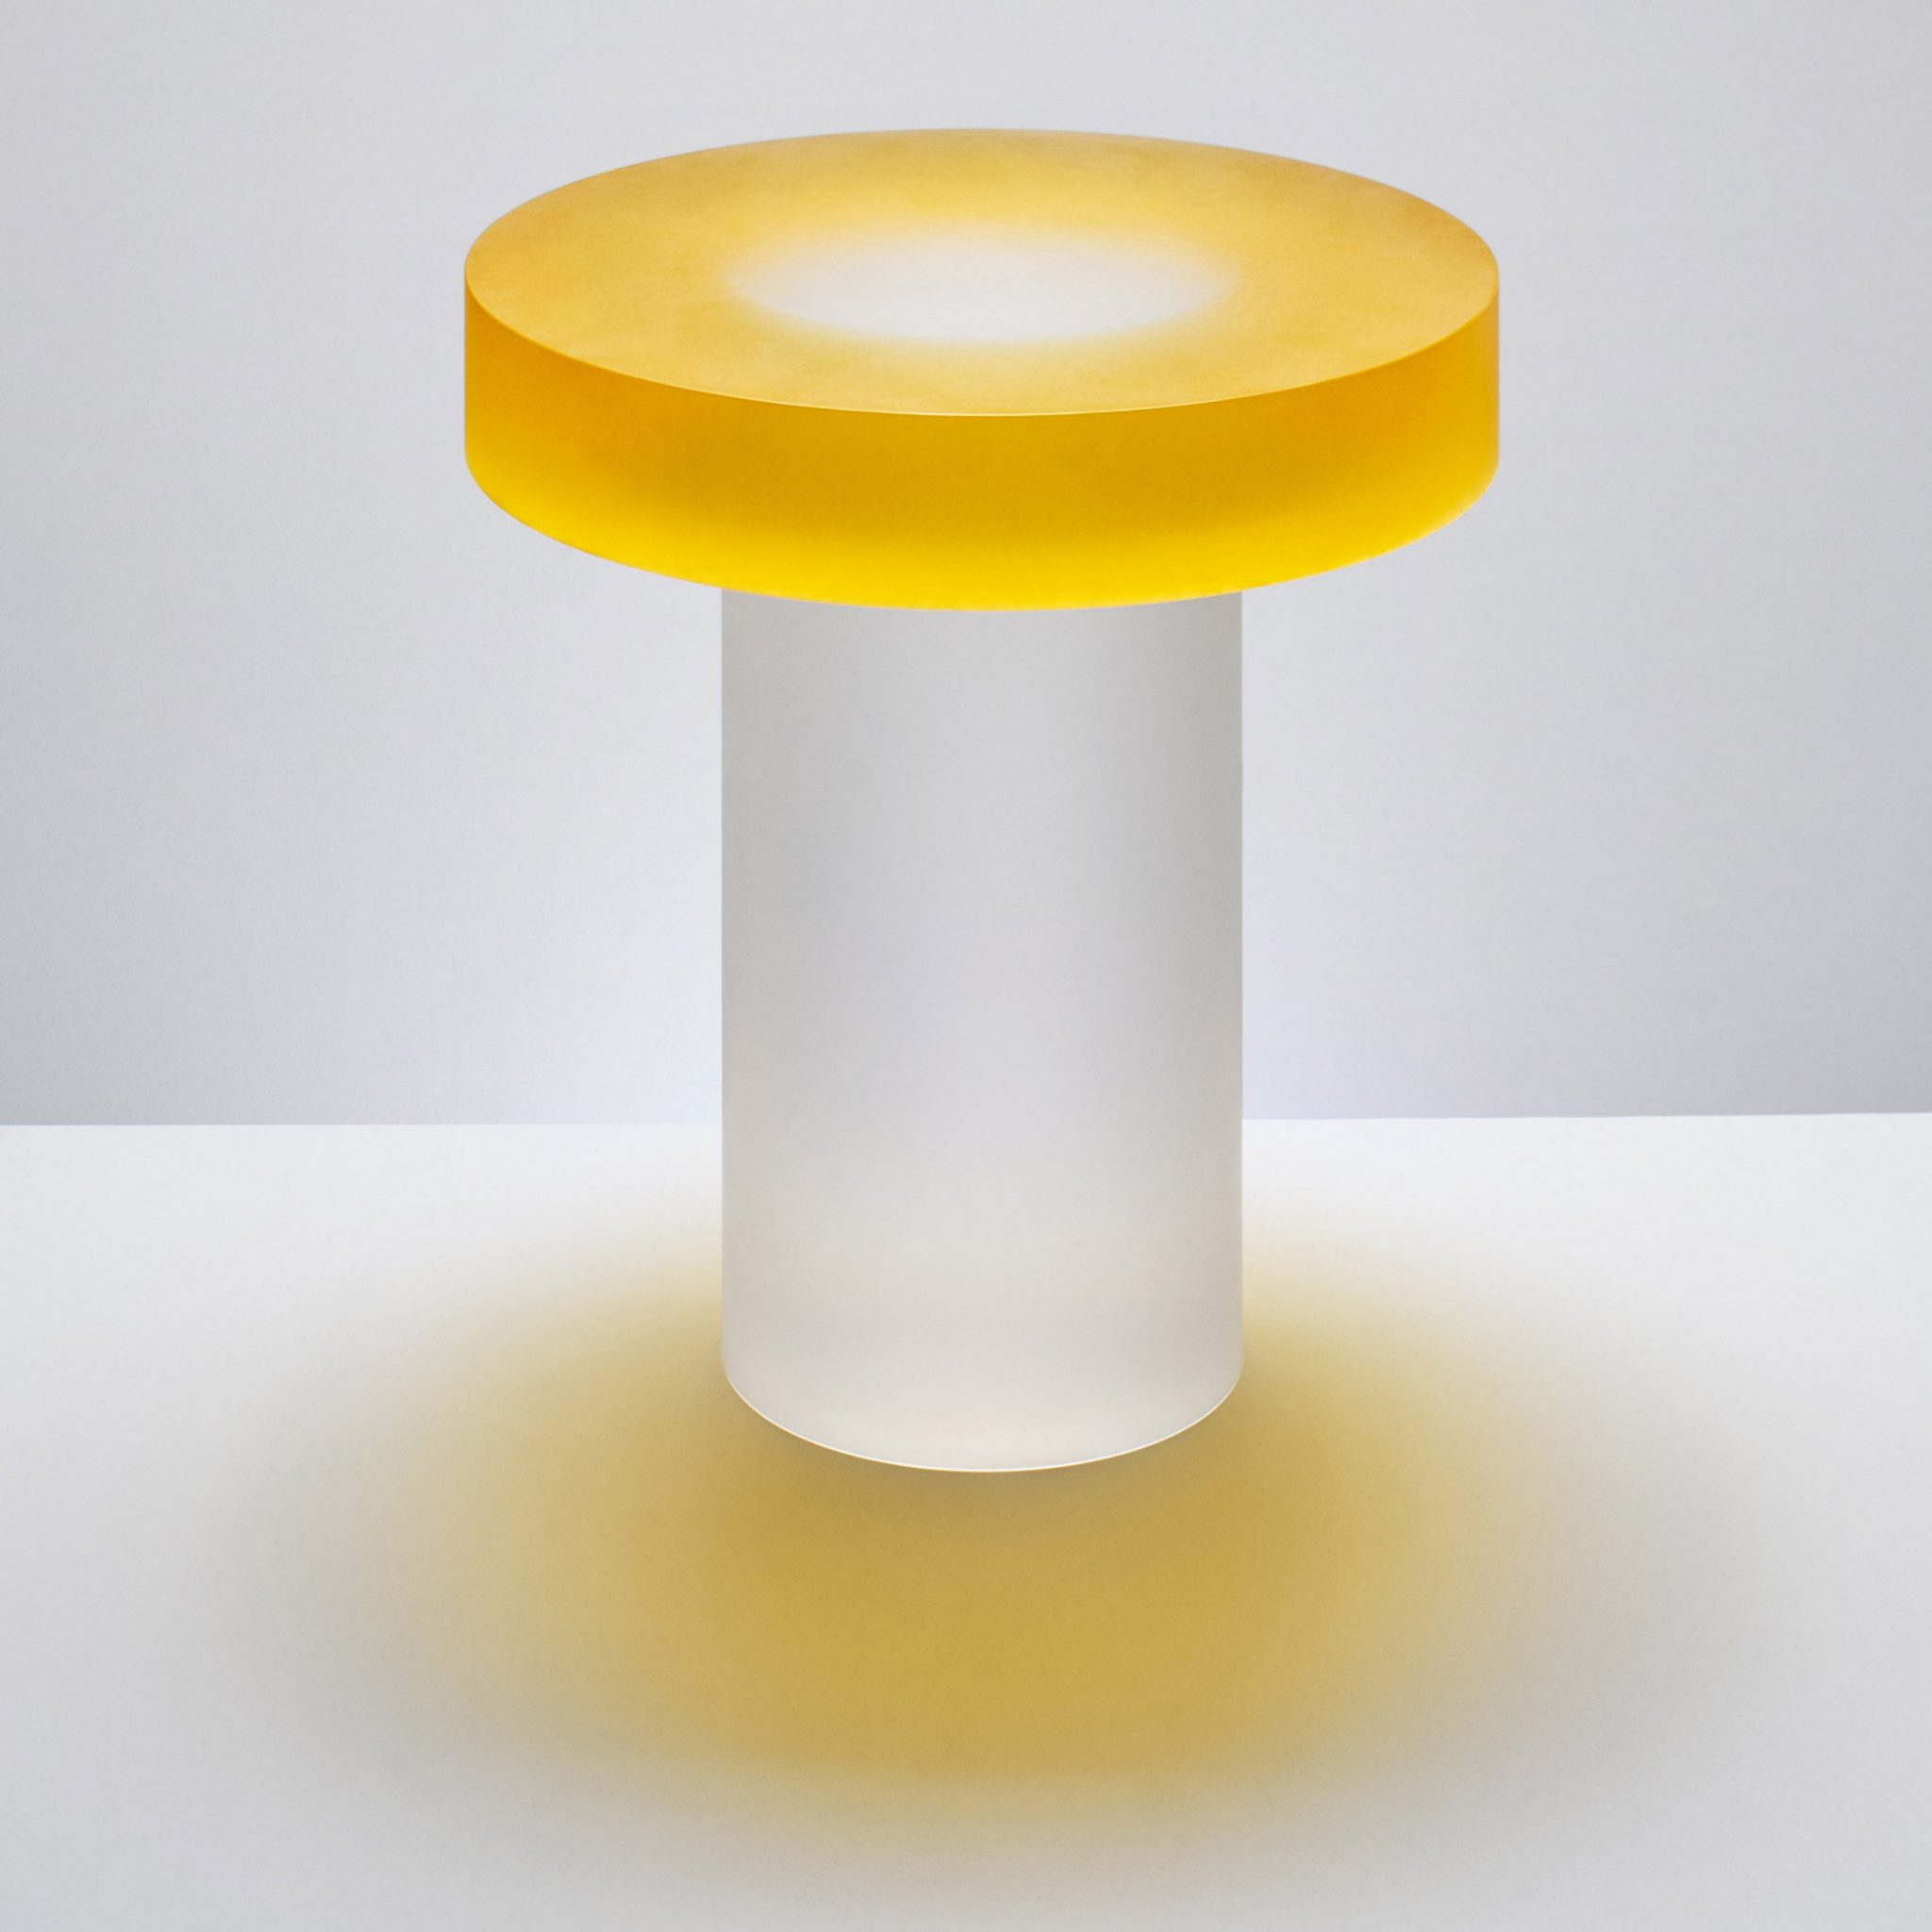 """Candy-coloured resin tables that """"challenge visual perception"""" block andy martin design furniture dezeen 2364 col 5"""